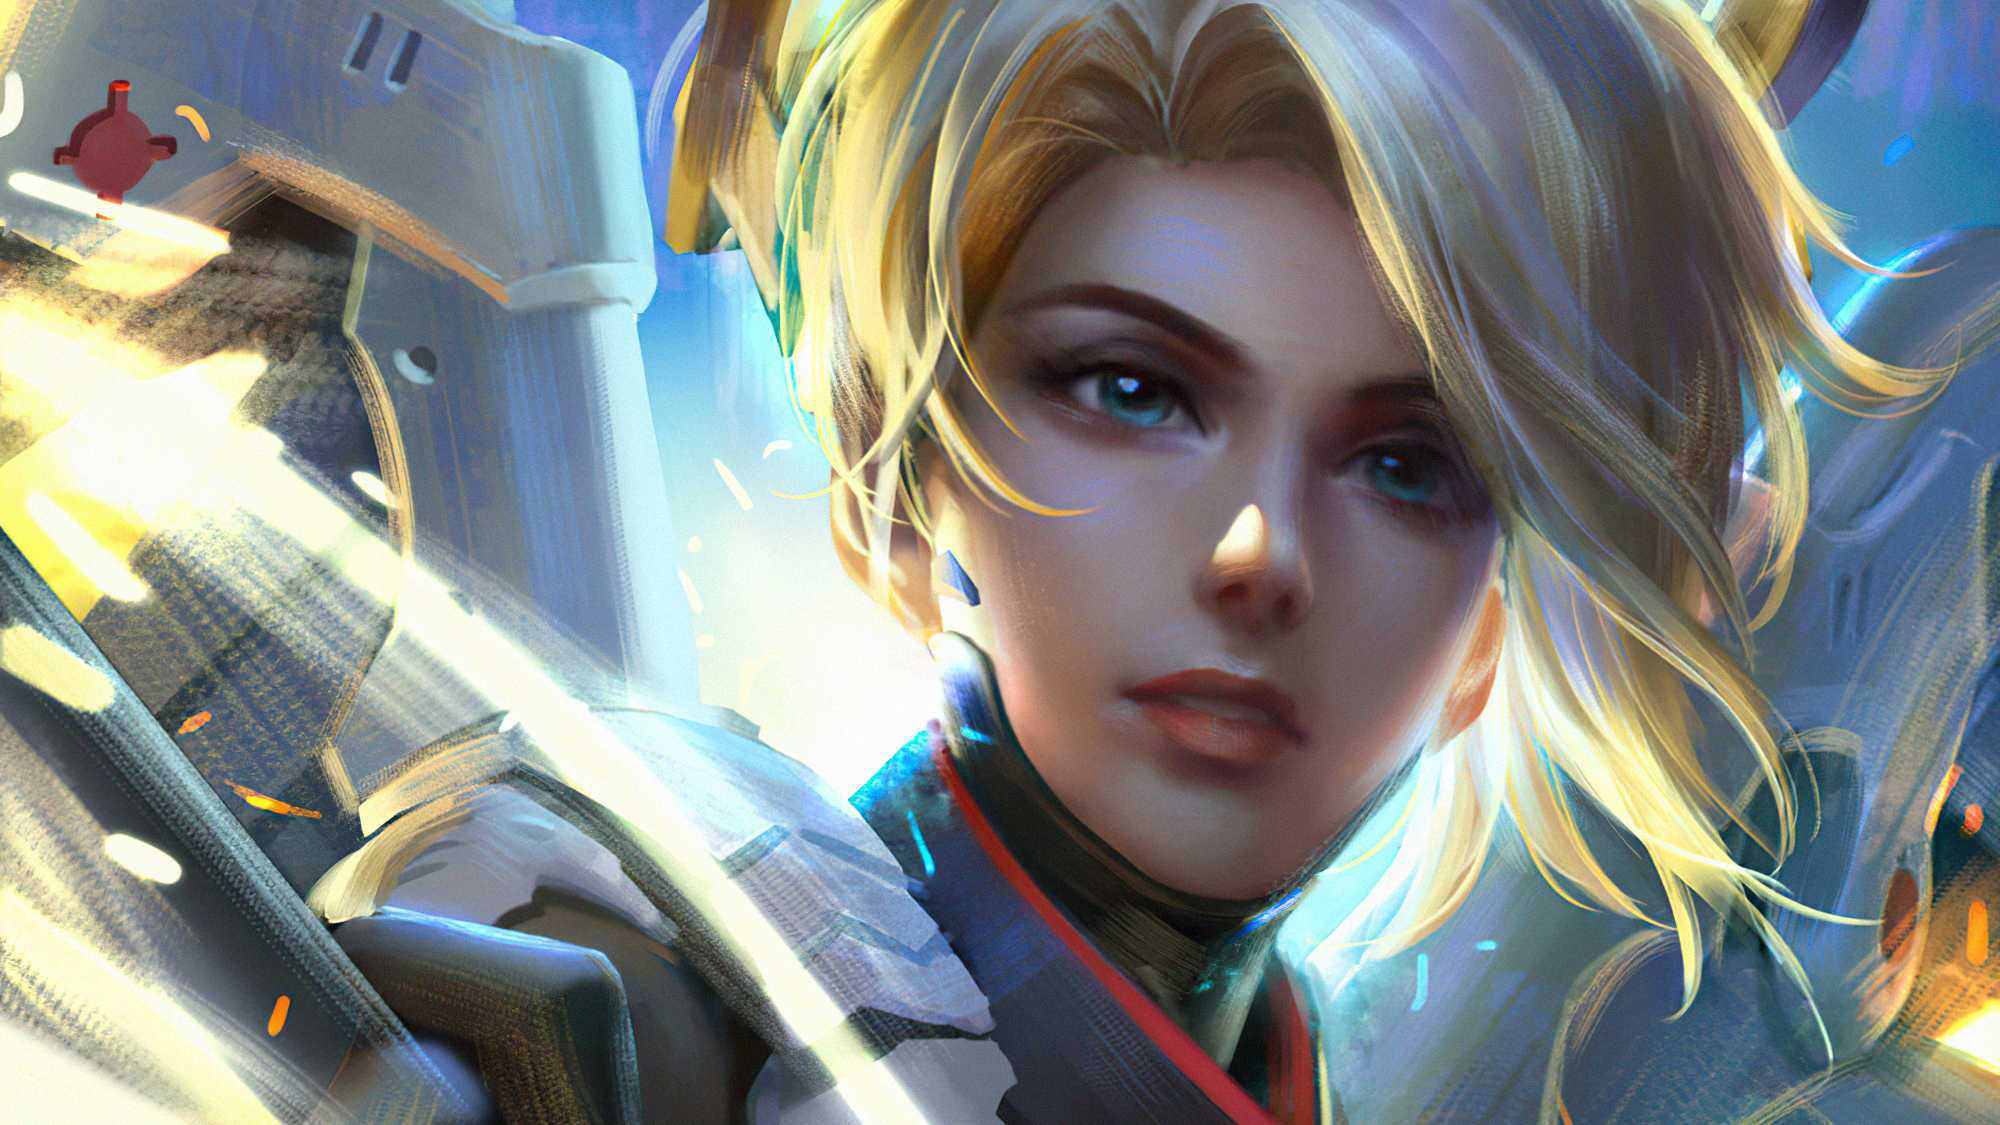 Video Game Overwatch Mercy Girl Blonde Blue Eyes Hd Wallpaper _ Background Image Face